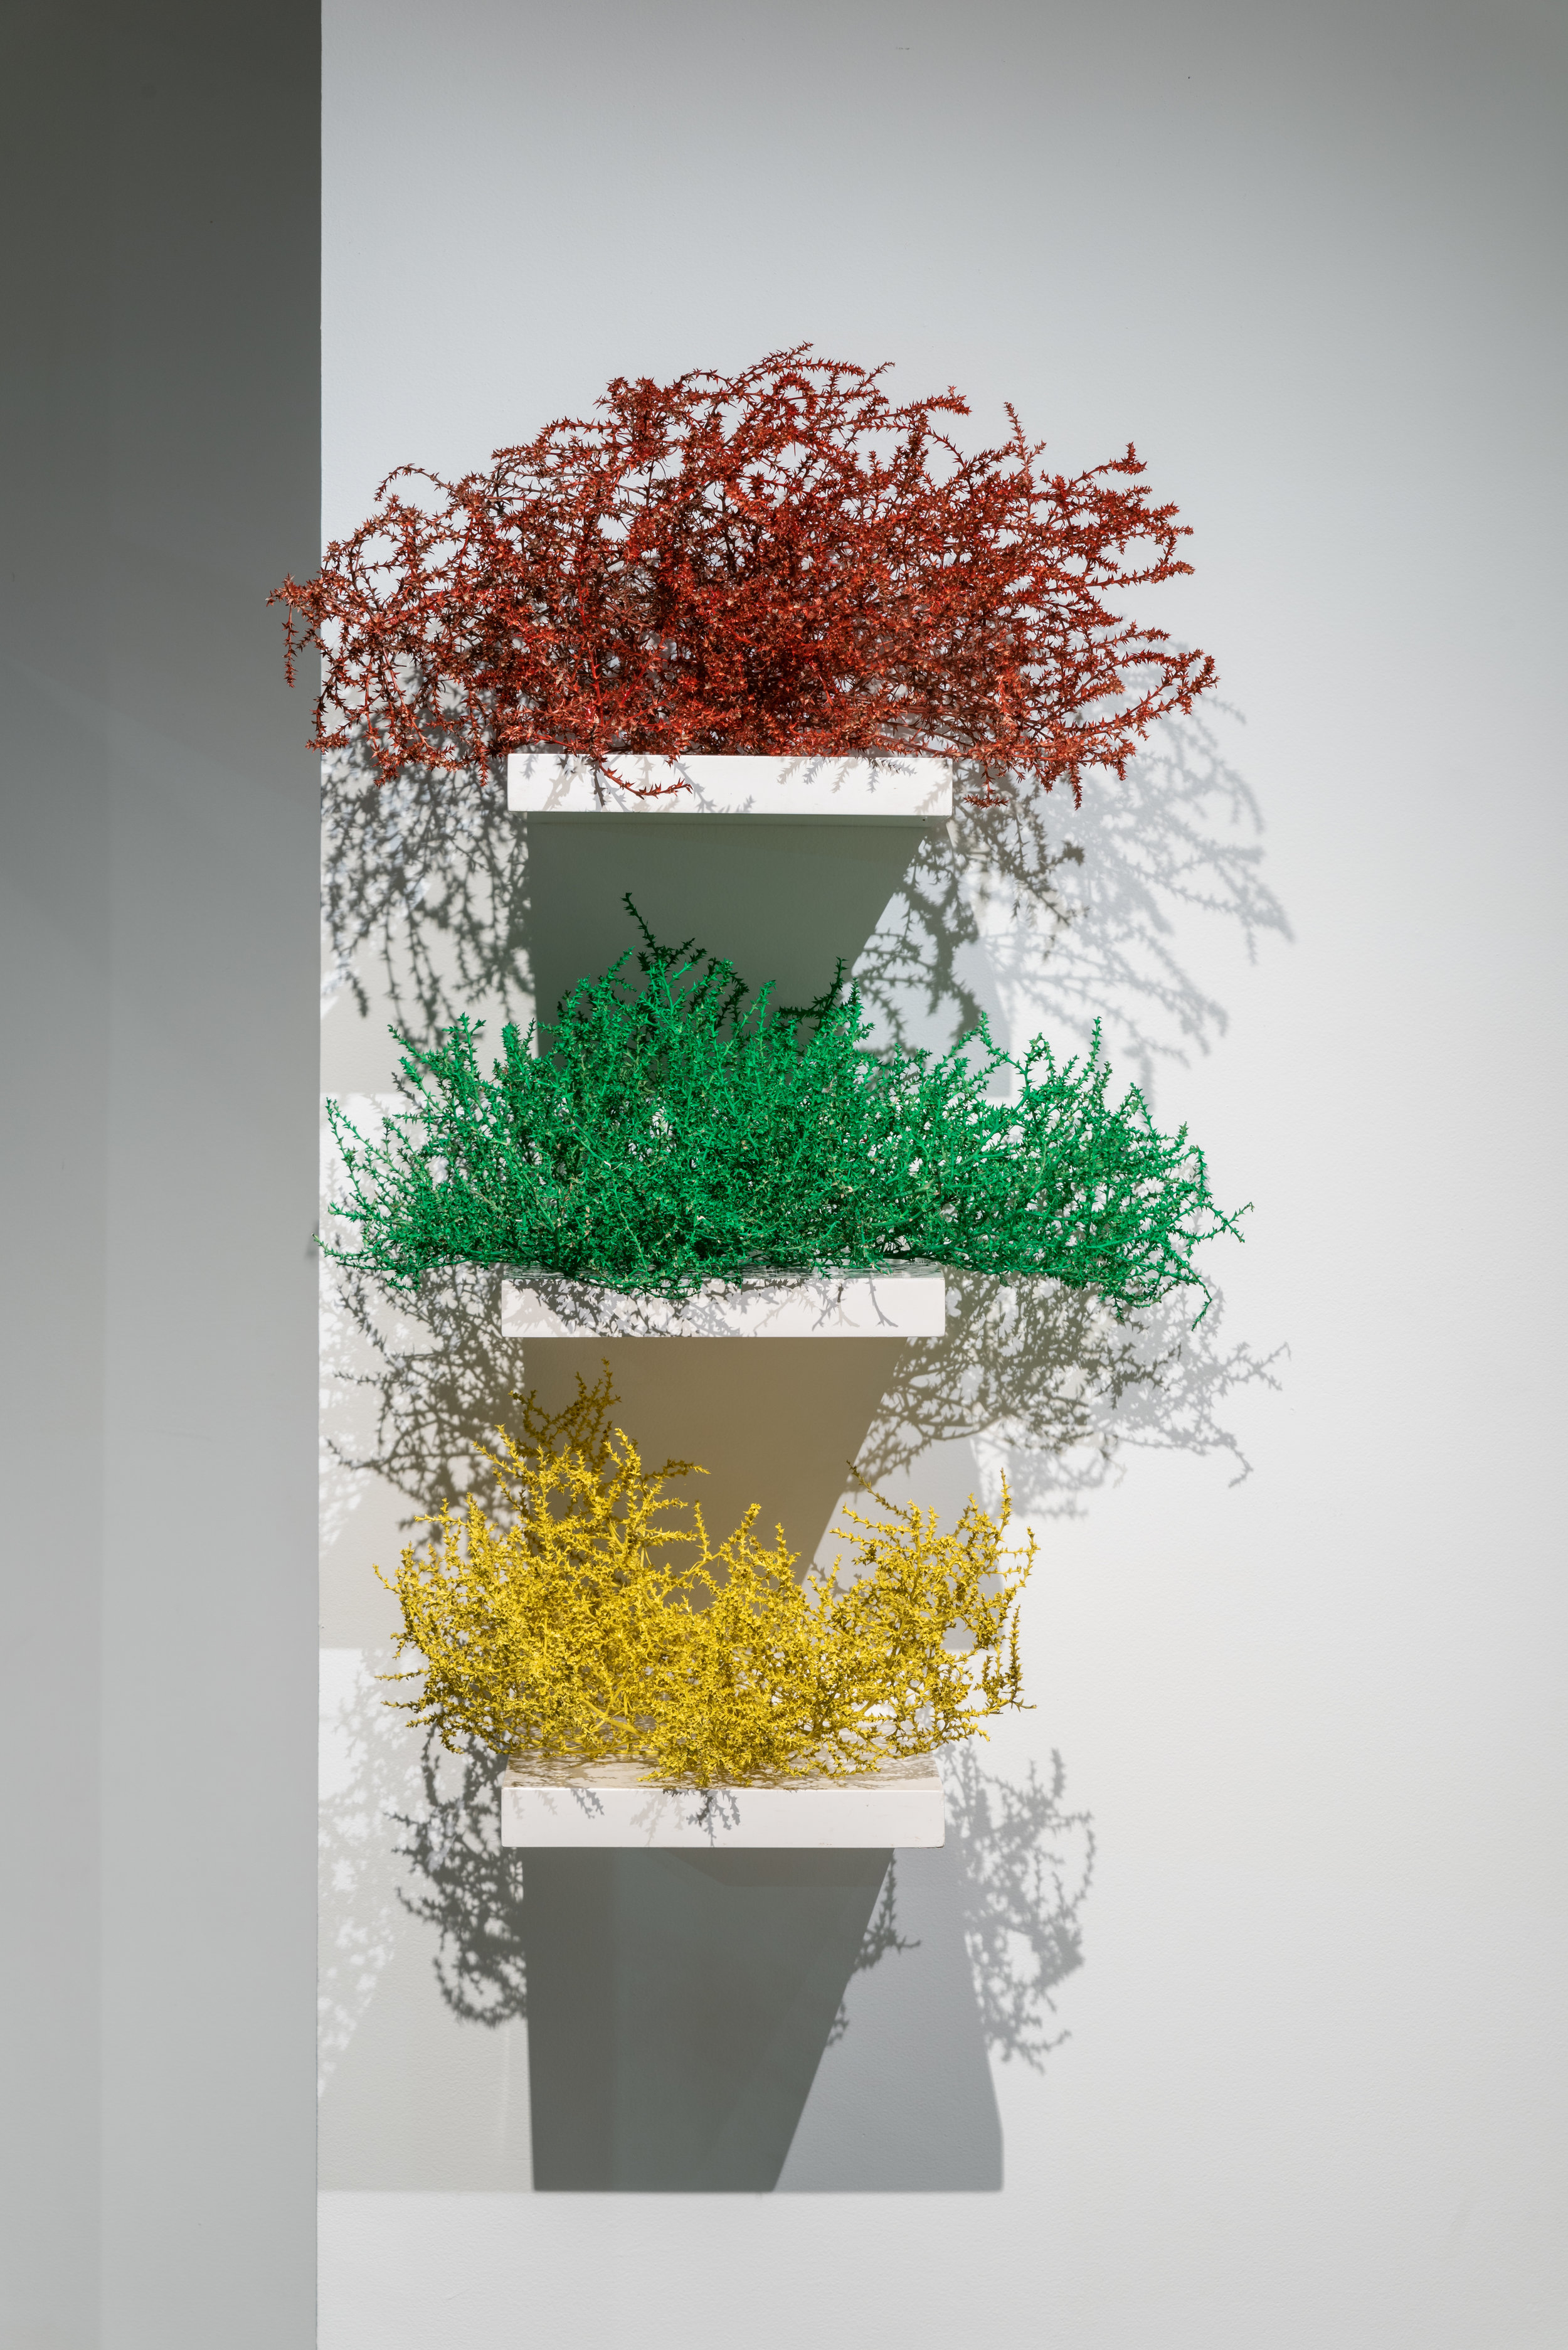 Untitled (Tumbleweeds) , 2018  Tumbleweeds, spray paint and shelves  48 x 24 x 14 in.